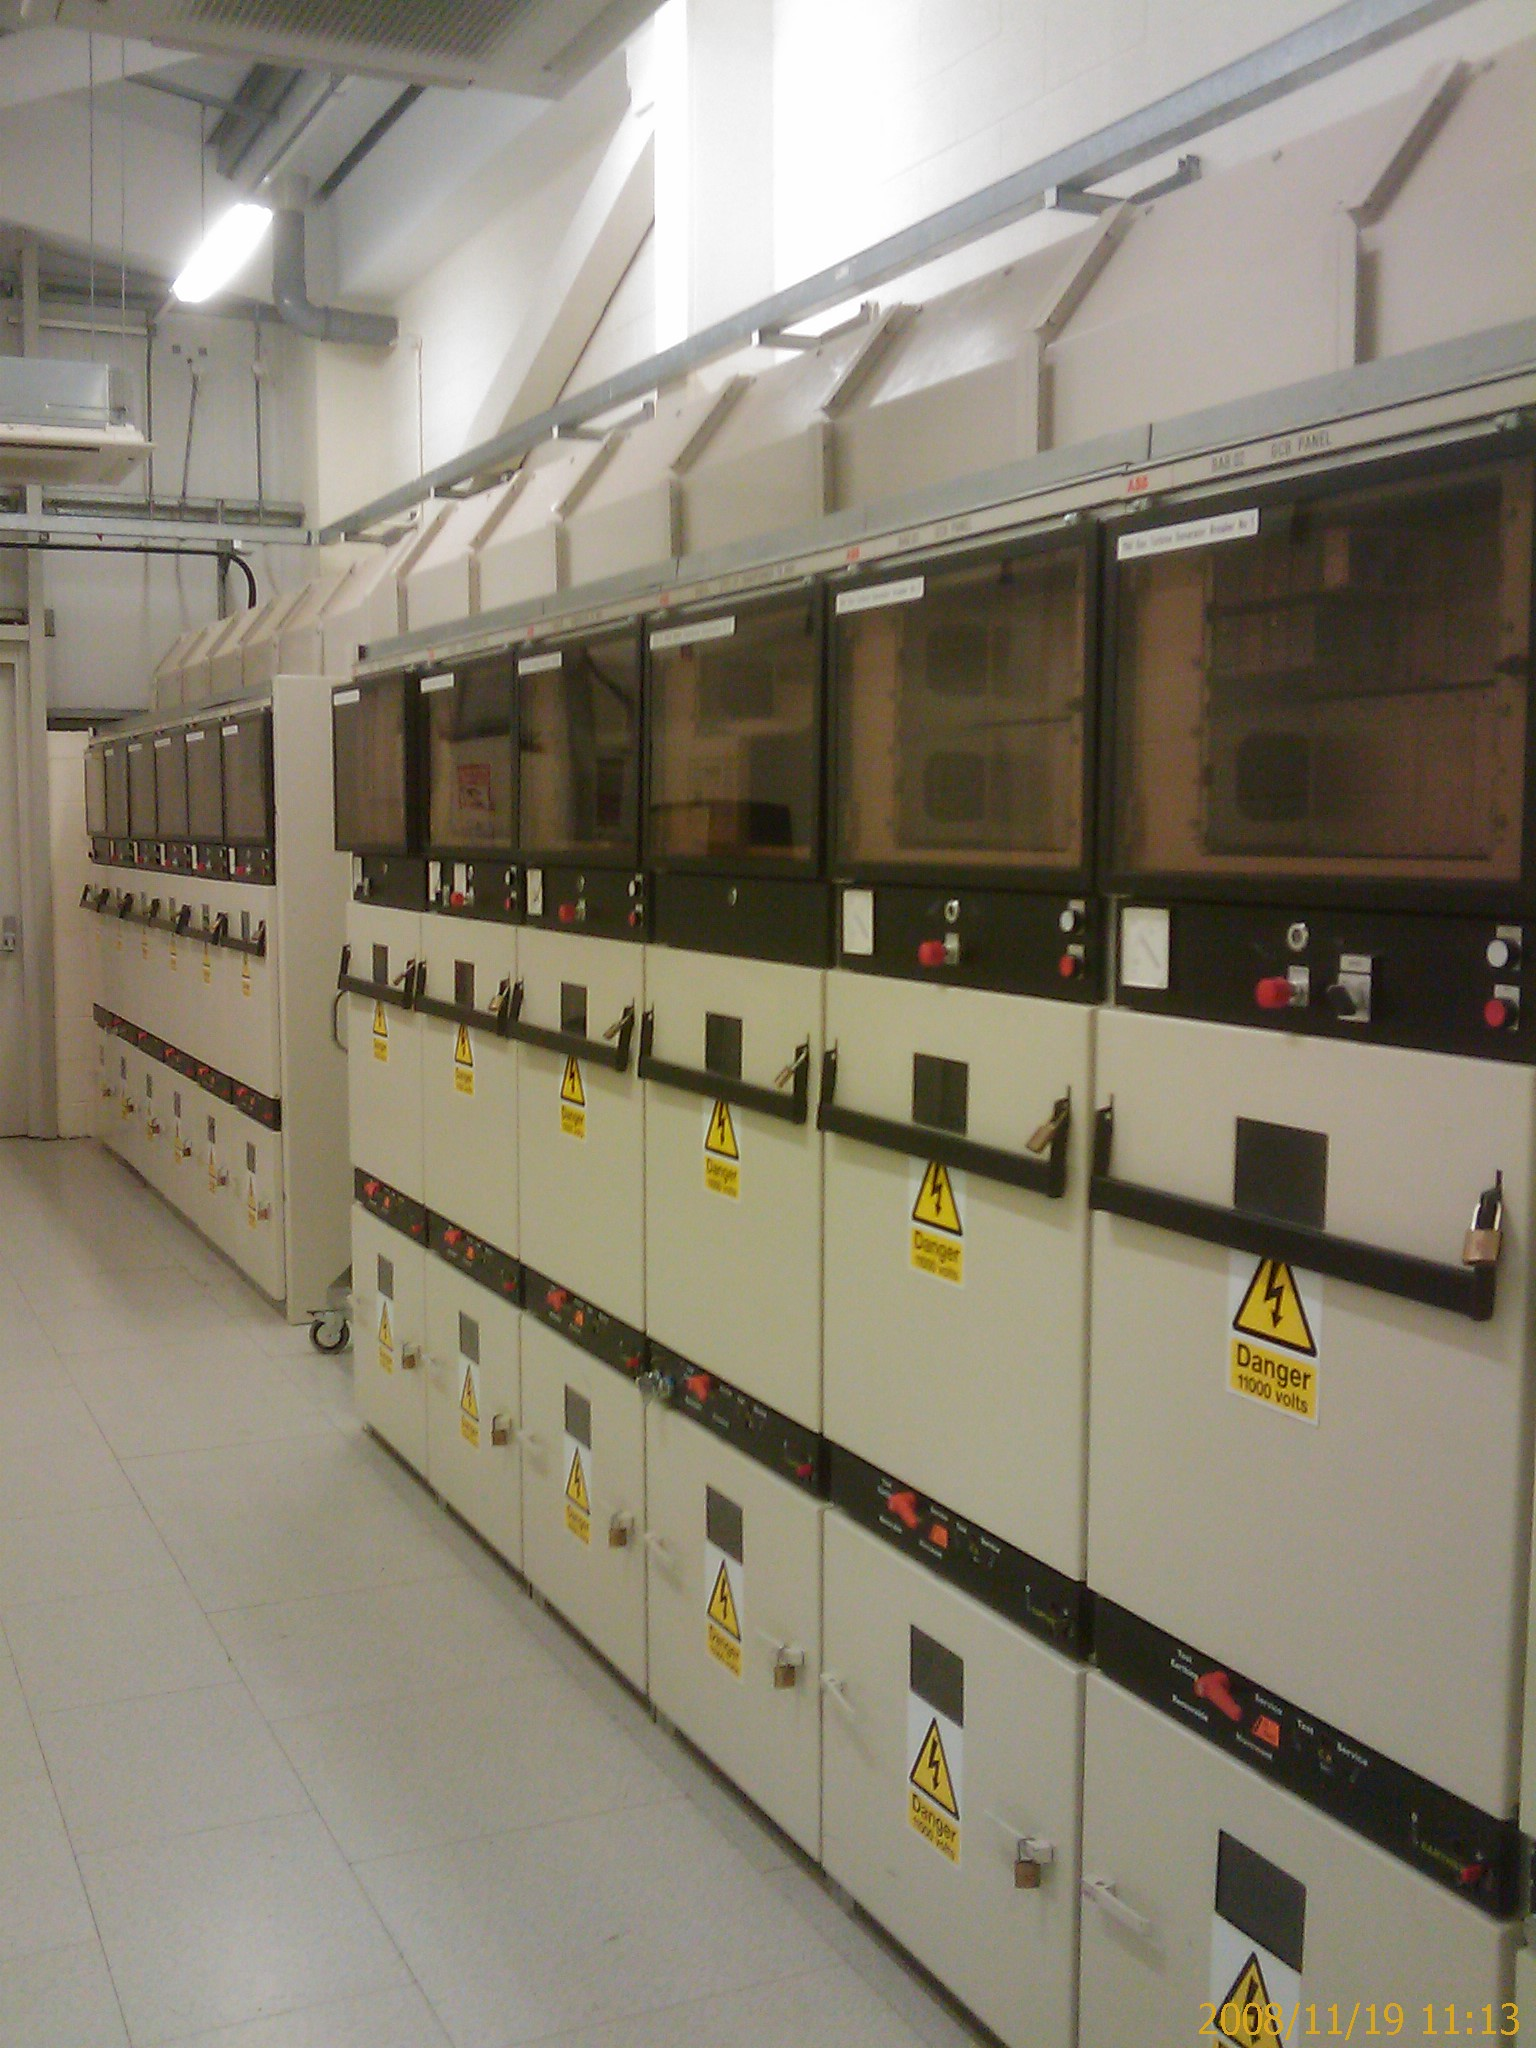 11 & 6.6kV SF6 switchgear